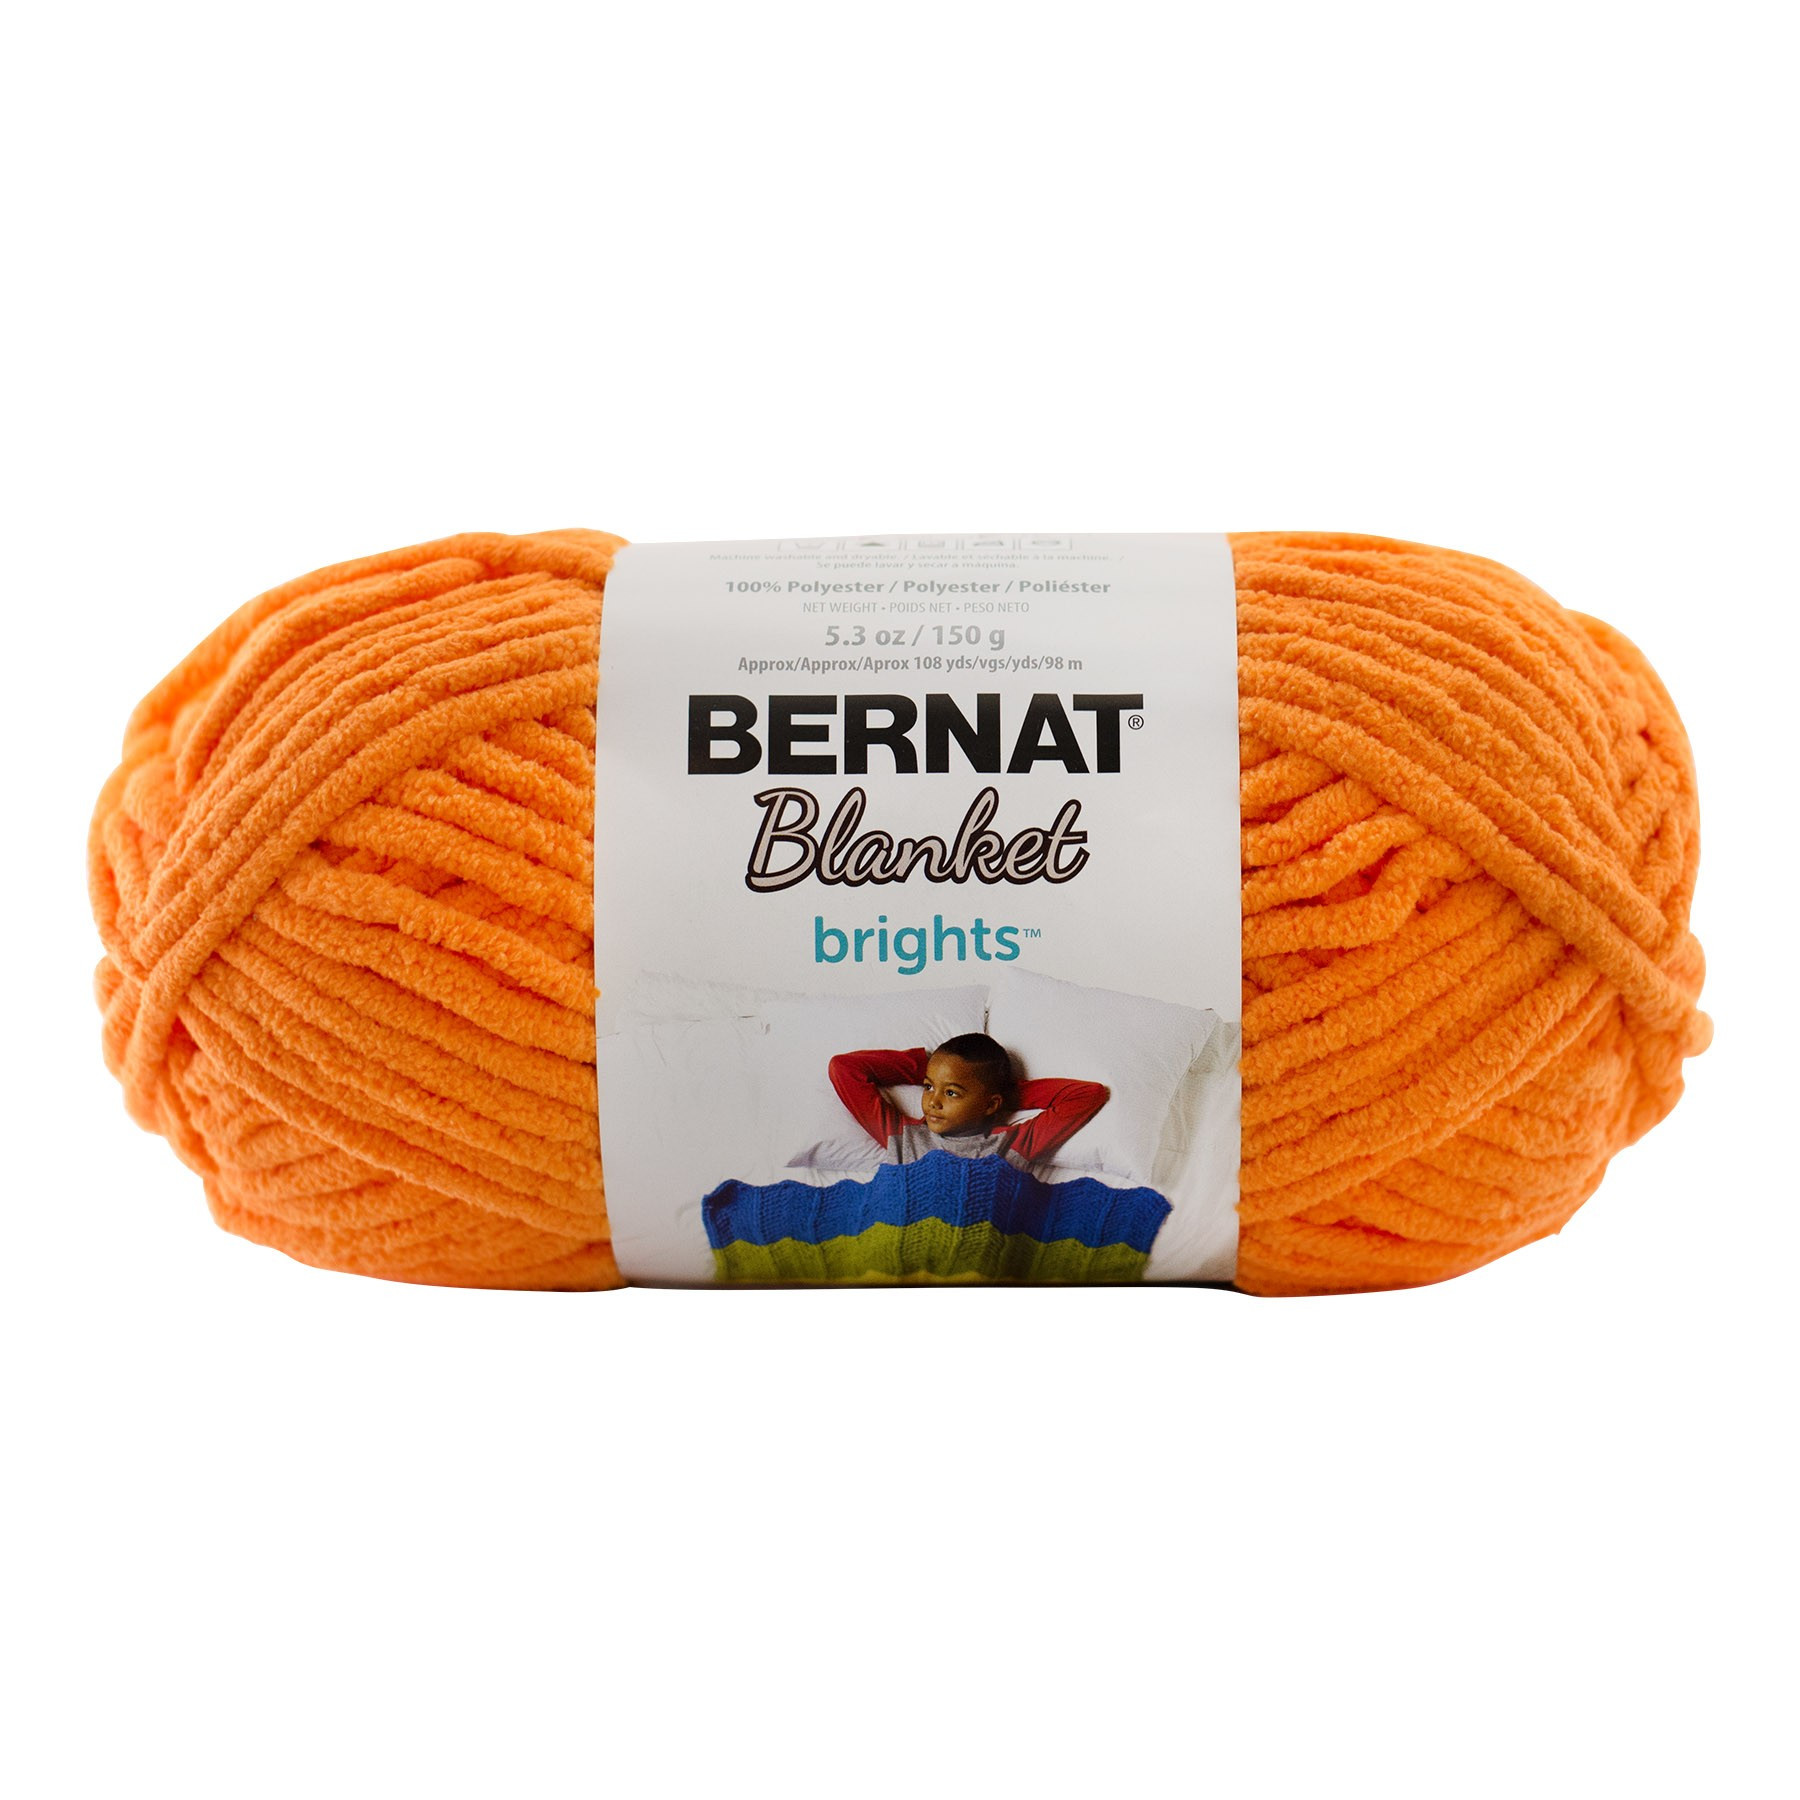 Bernat Blanket Yarn Luxury Yarnspirations Of Beautiful 42 Models Bernat Blanket Yarn